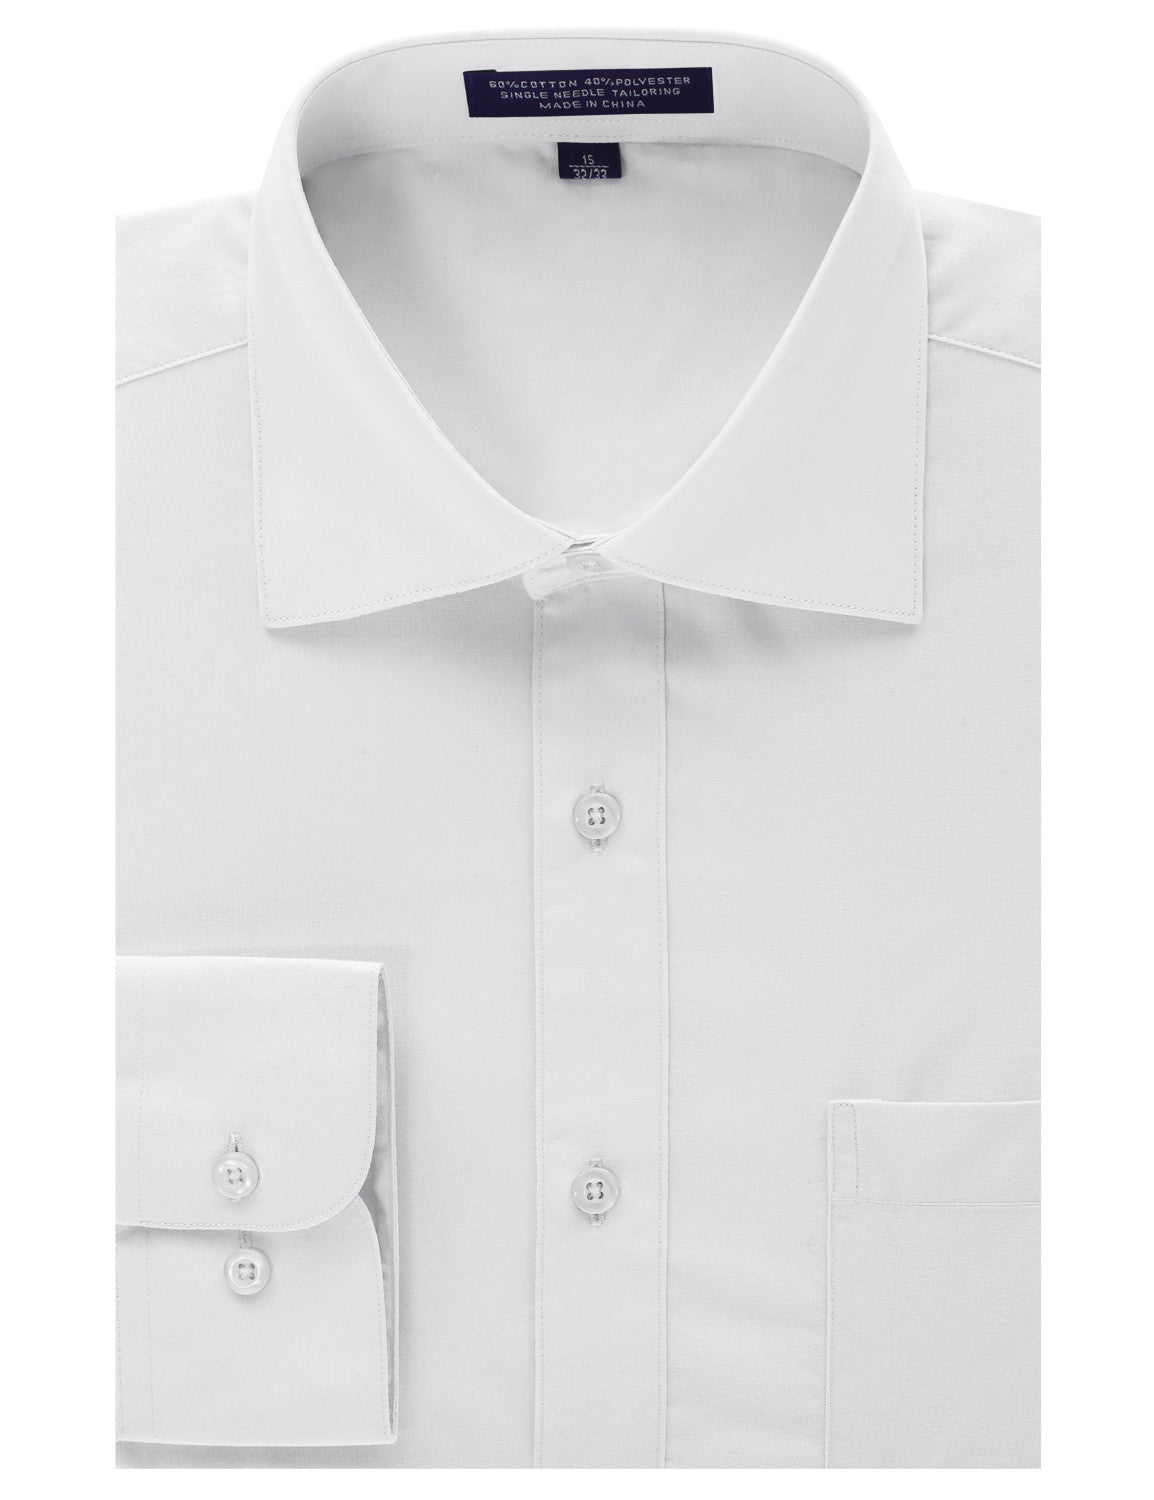 WHITE Regular Fit Dress Shirt w/ Reversible Cuff (Big & Tall Available)- MONDAYSUIT